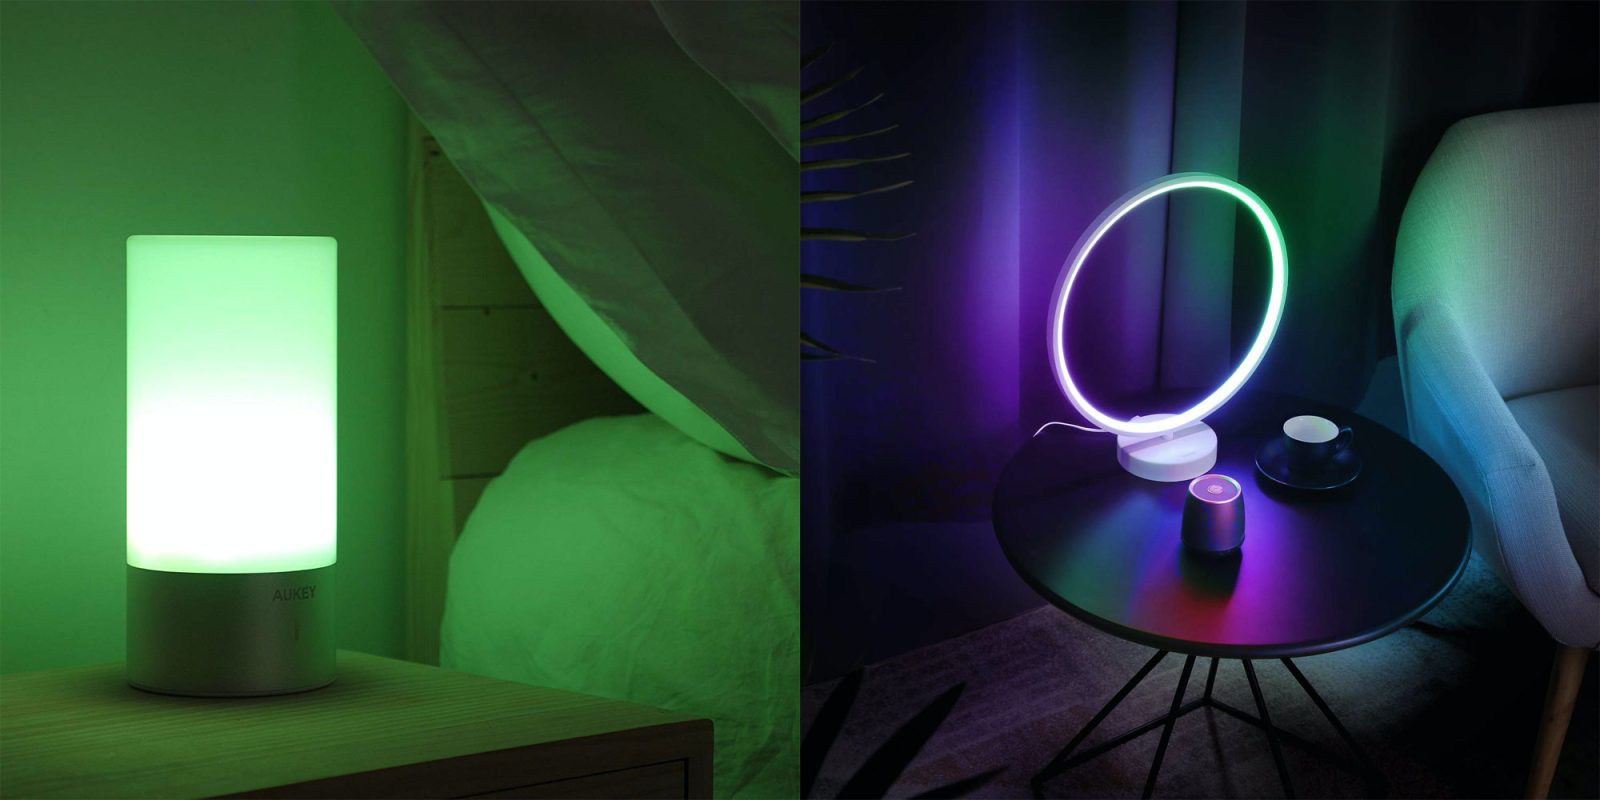 These AUKEY dimmable RGB lamps upgrade your space's lighting from $20.50